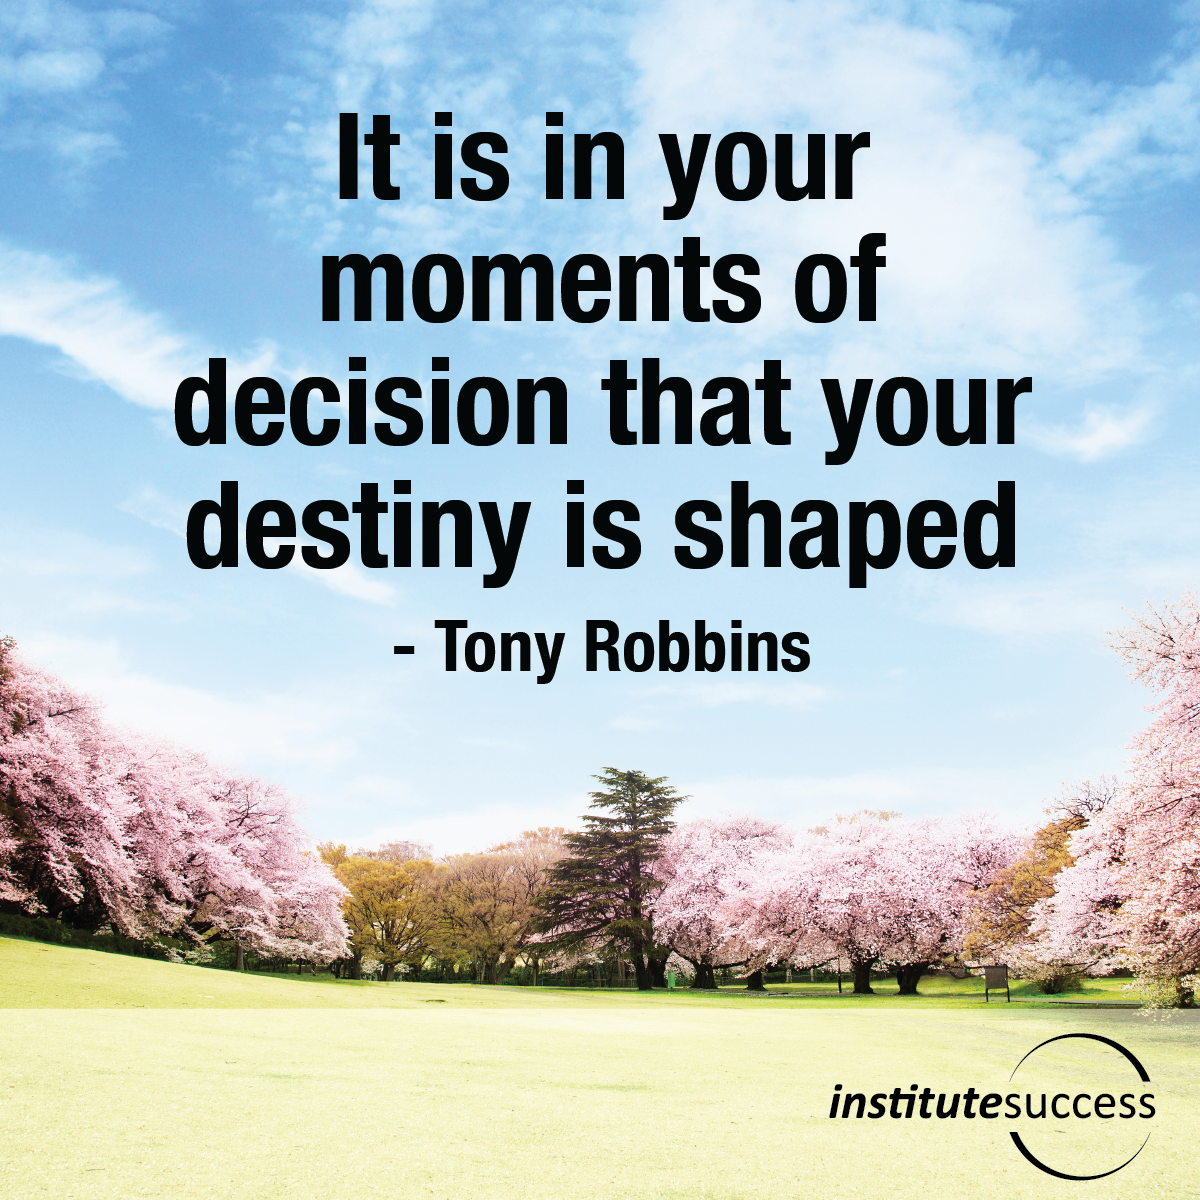 It is in your moments of decision that your destiny is shaped – Tony Robbins